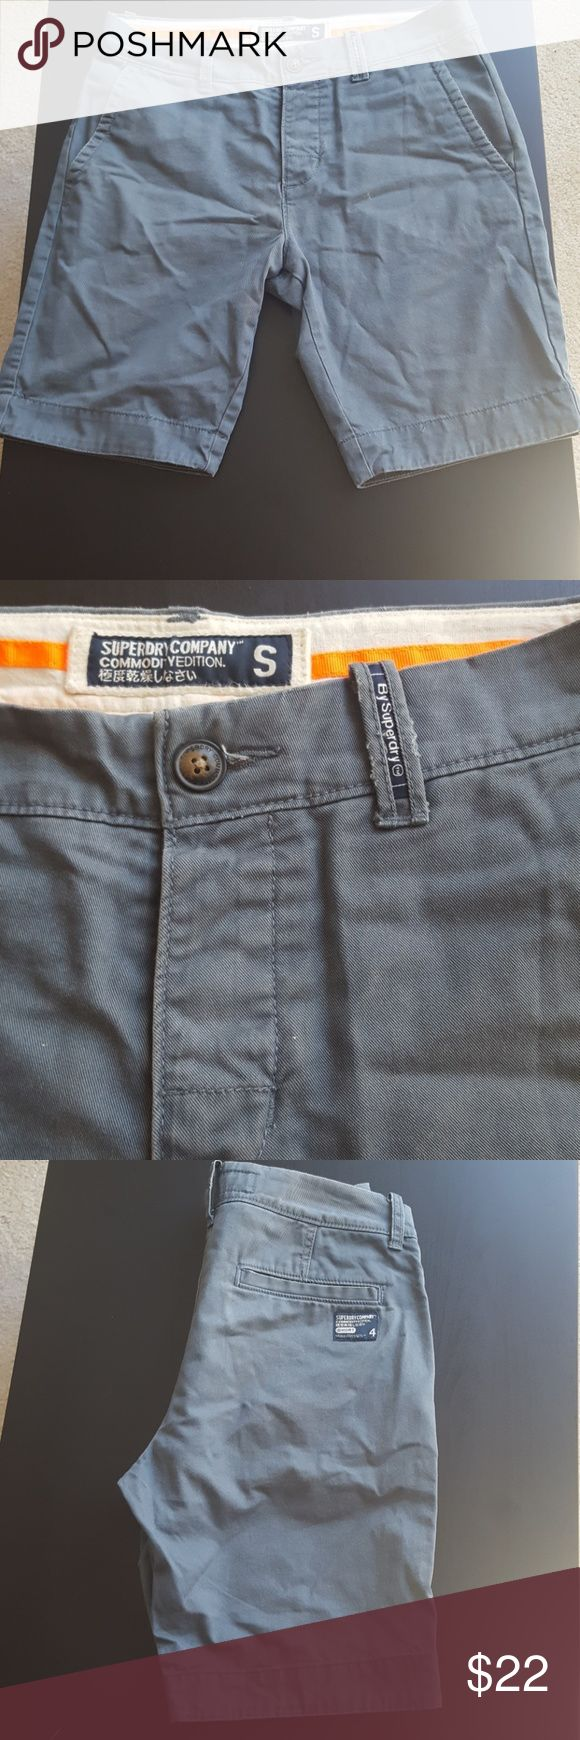 Superdry Mens Chino Shorts Great used condition! With four pockets and a button fly. The color is a steel Grey. Superdry Shorts